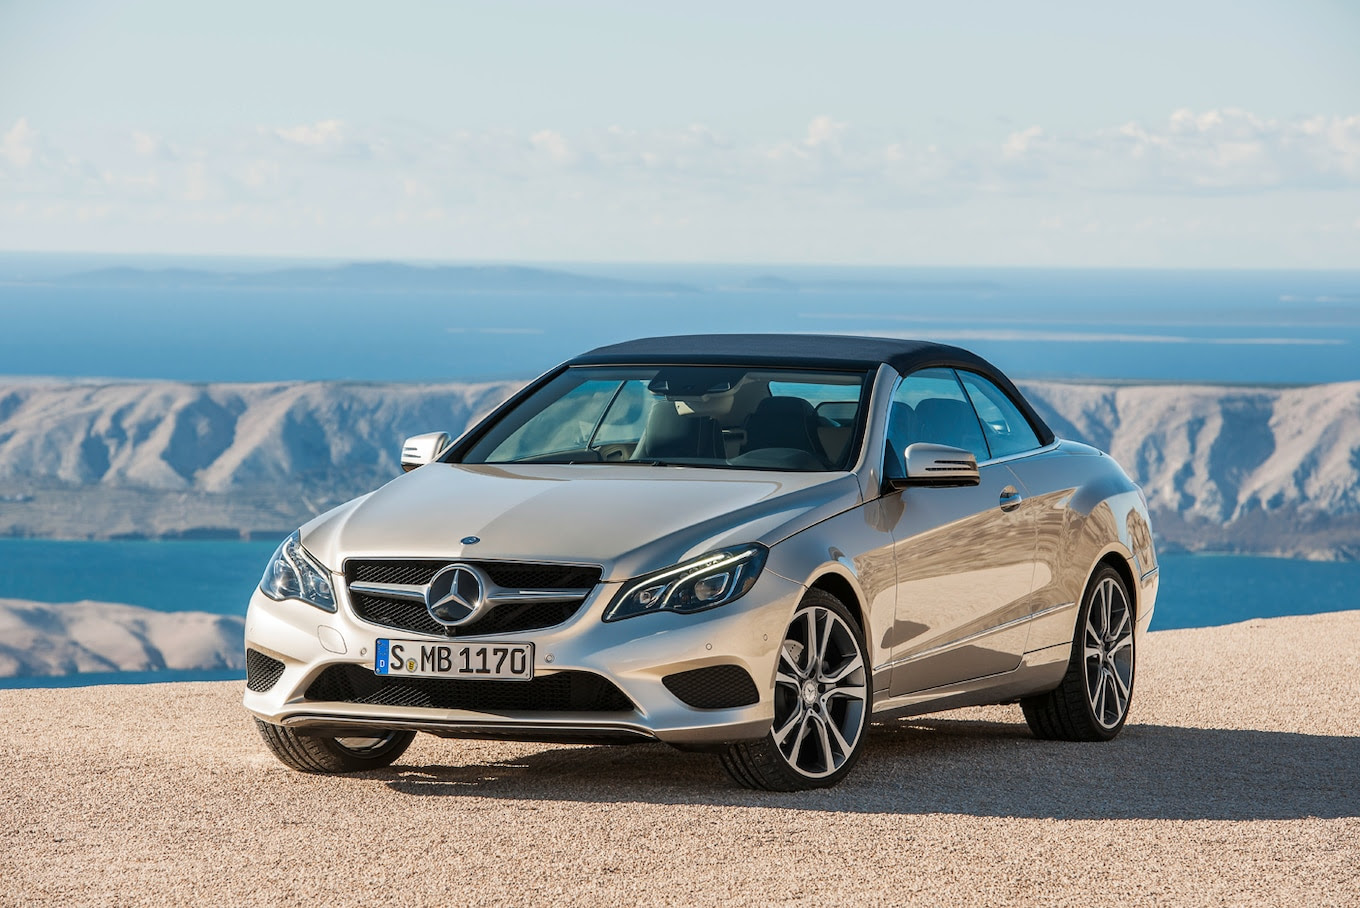 2014 Mercedes-Benz E-Class Coupe and Cabriolet First Look ...